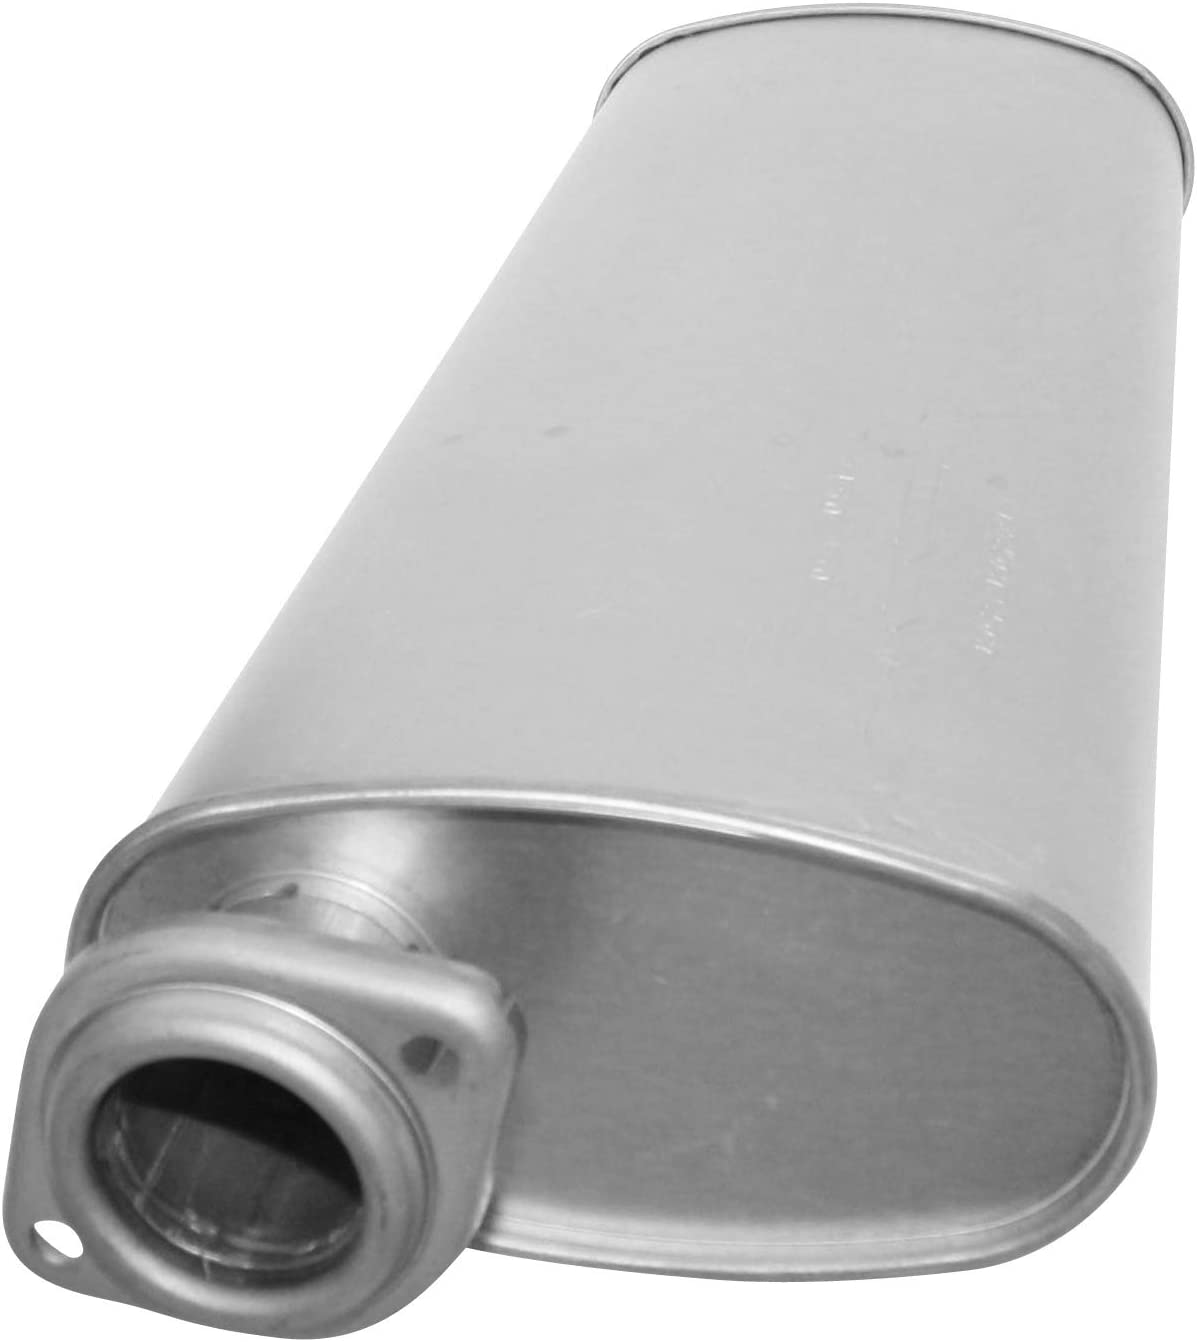 AP Exhaust Products 700466 Muffler